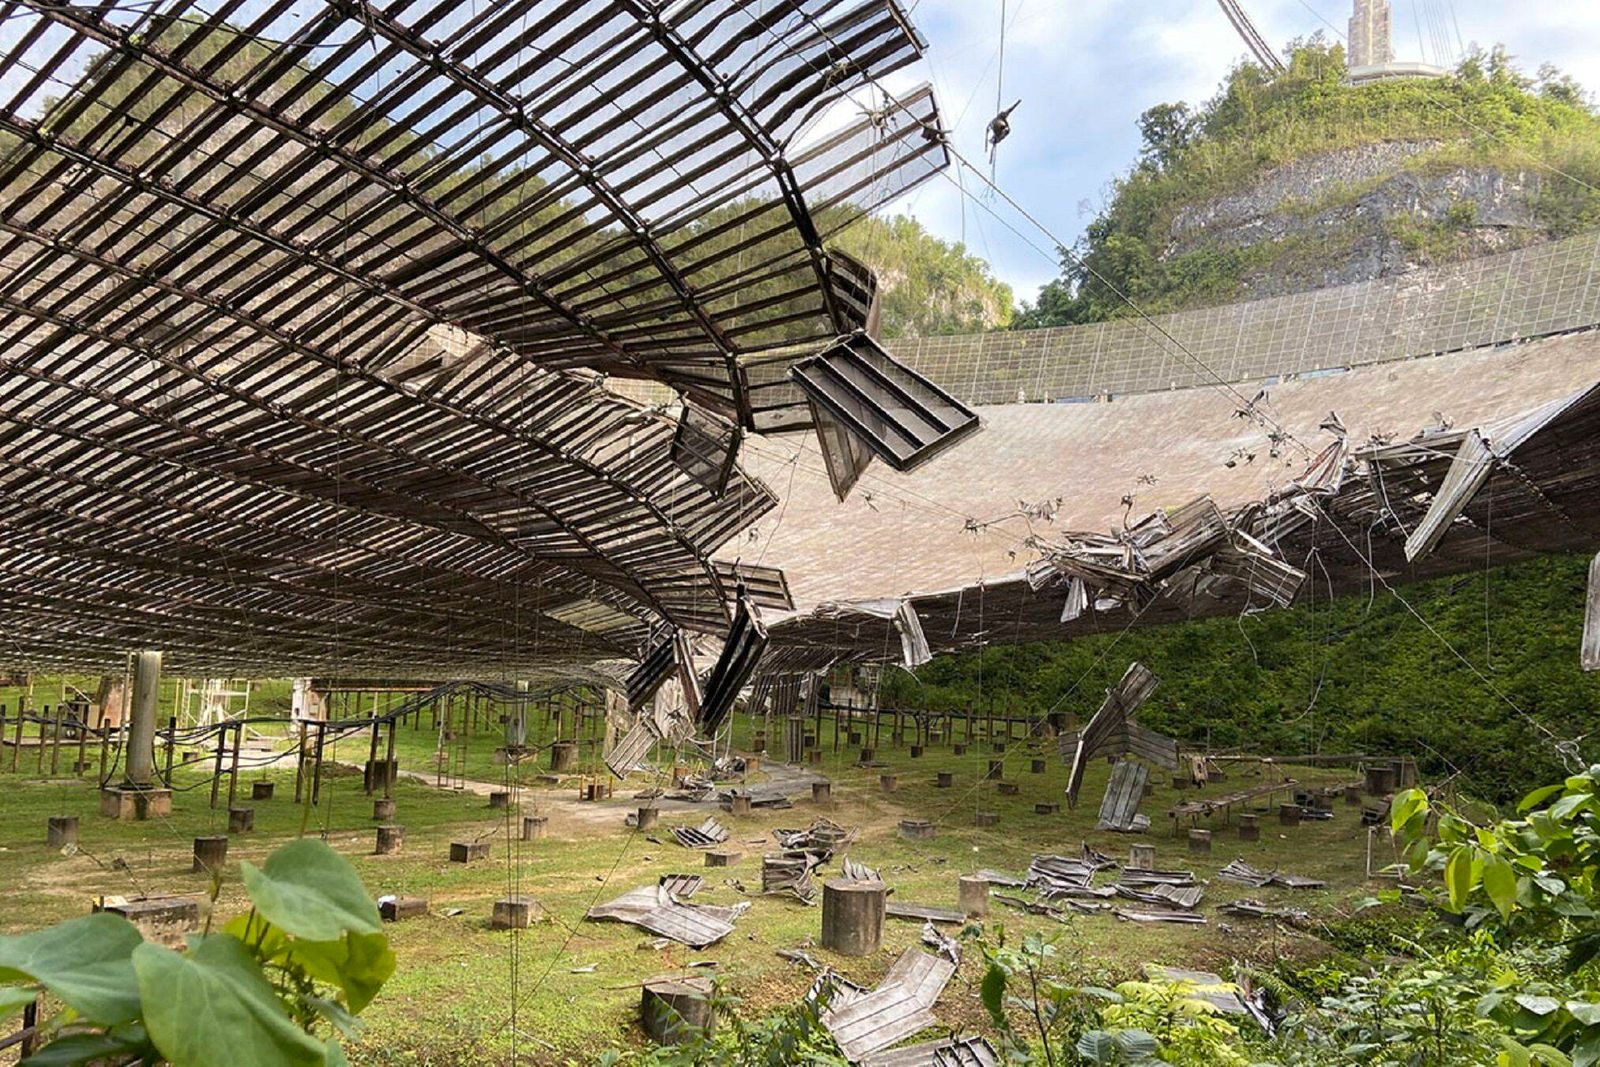 August 11, 2020: Observatorio de Arecibo PUBLICATIONxINxGERxSUIxAUTxONLY - ZUMAd69_ 20200811_zaa_d69_042 Copyright: xElx